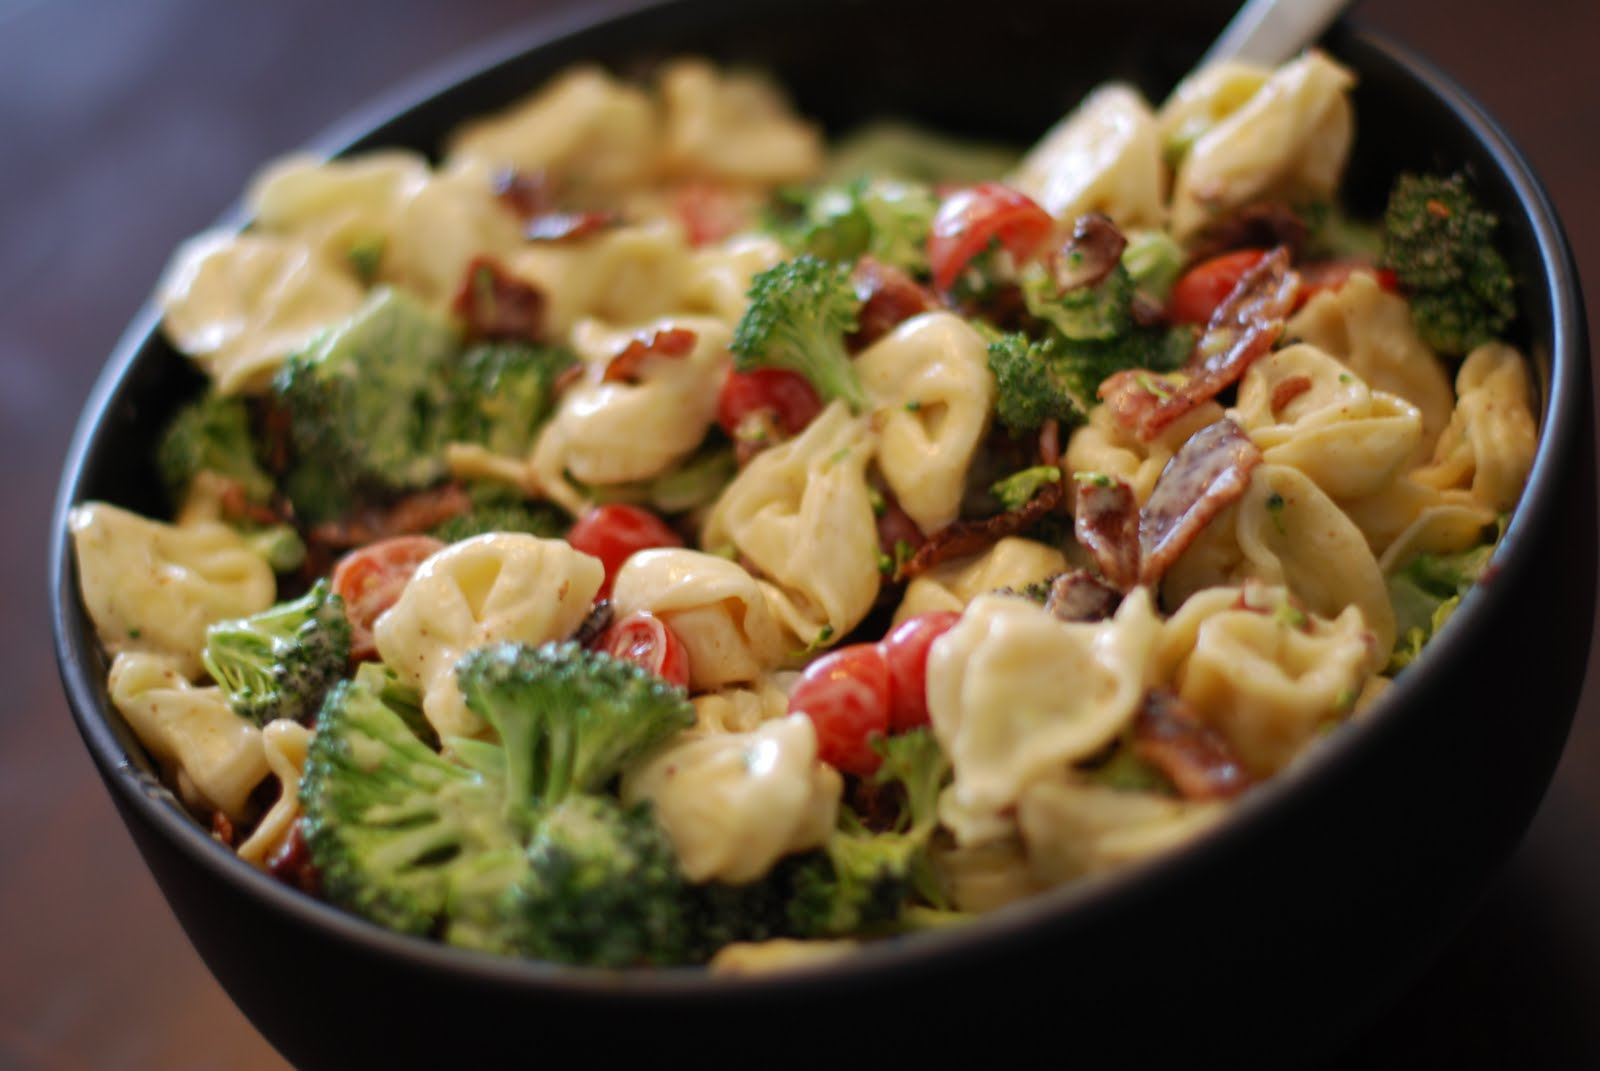 What's for Dinner?: Tortellini Bacon Broccoli Salad